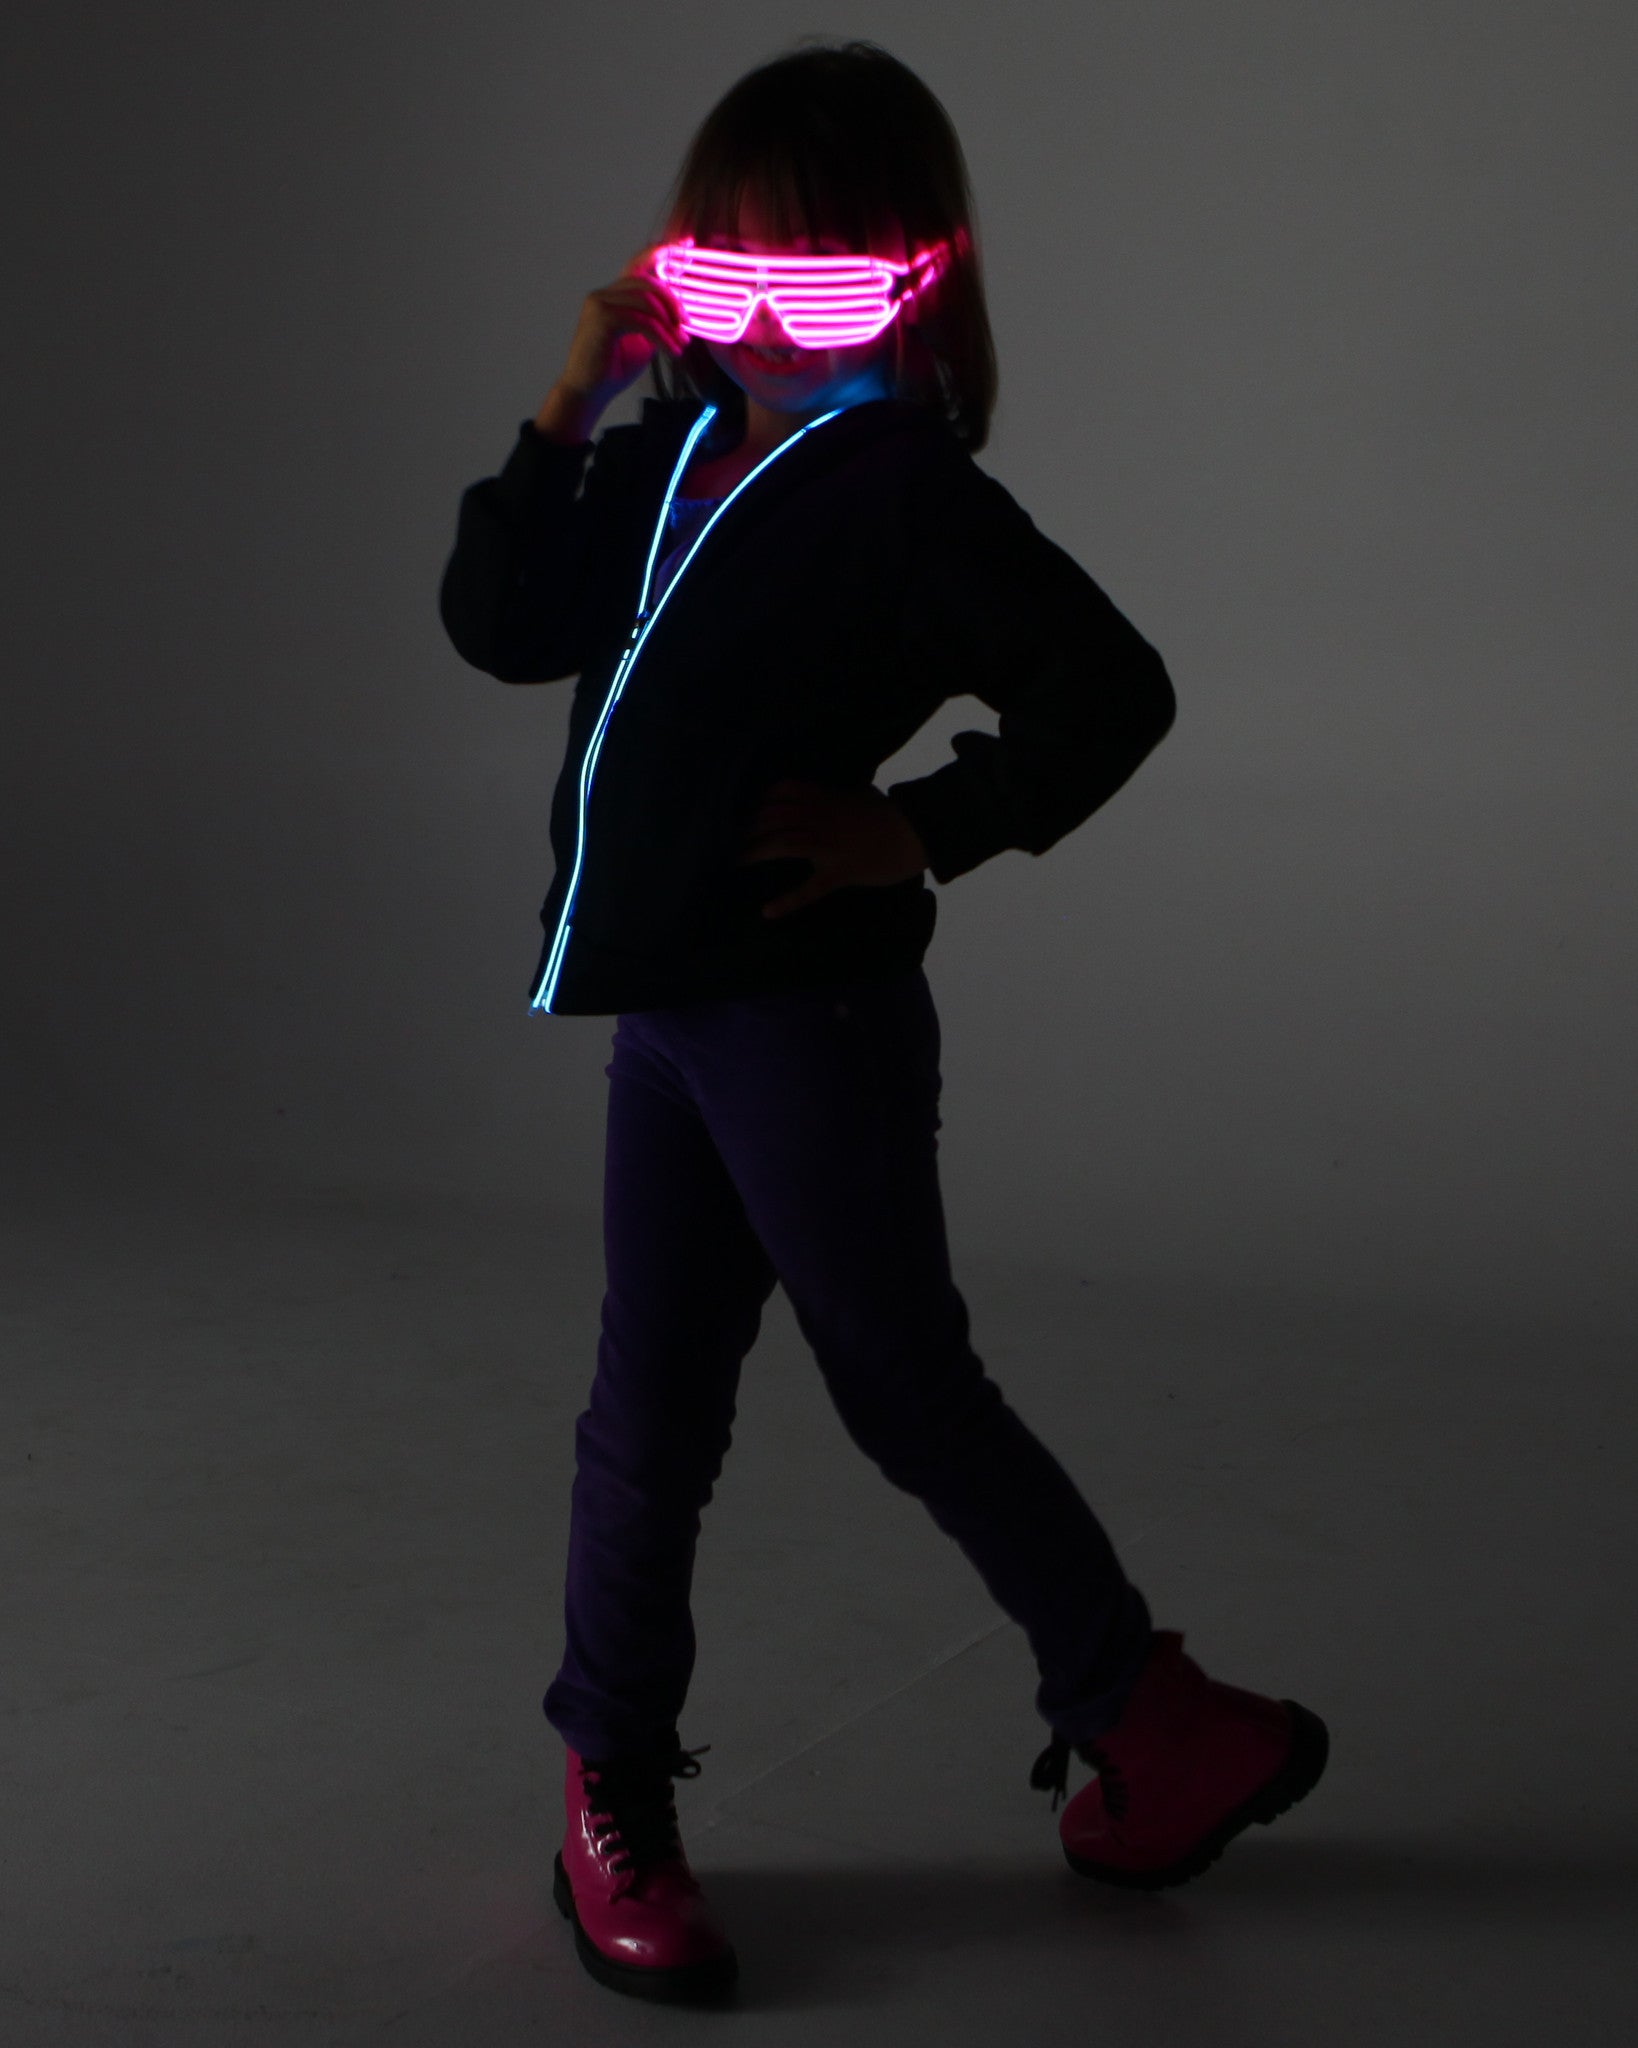 Light Up Shutter Glasses - Electric Styles | World's Number 1 Light Up Shoe Store - {product_type}} - Pink - 6